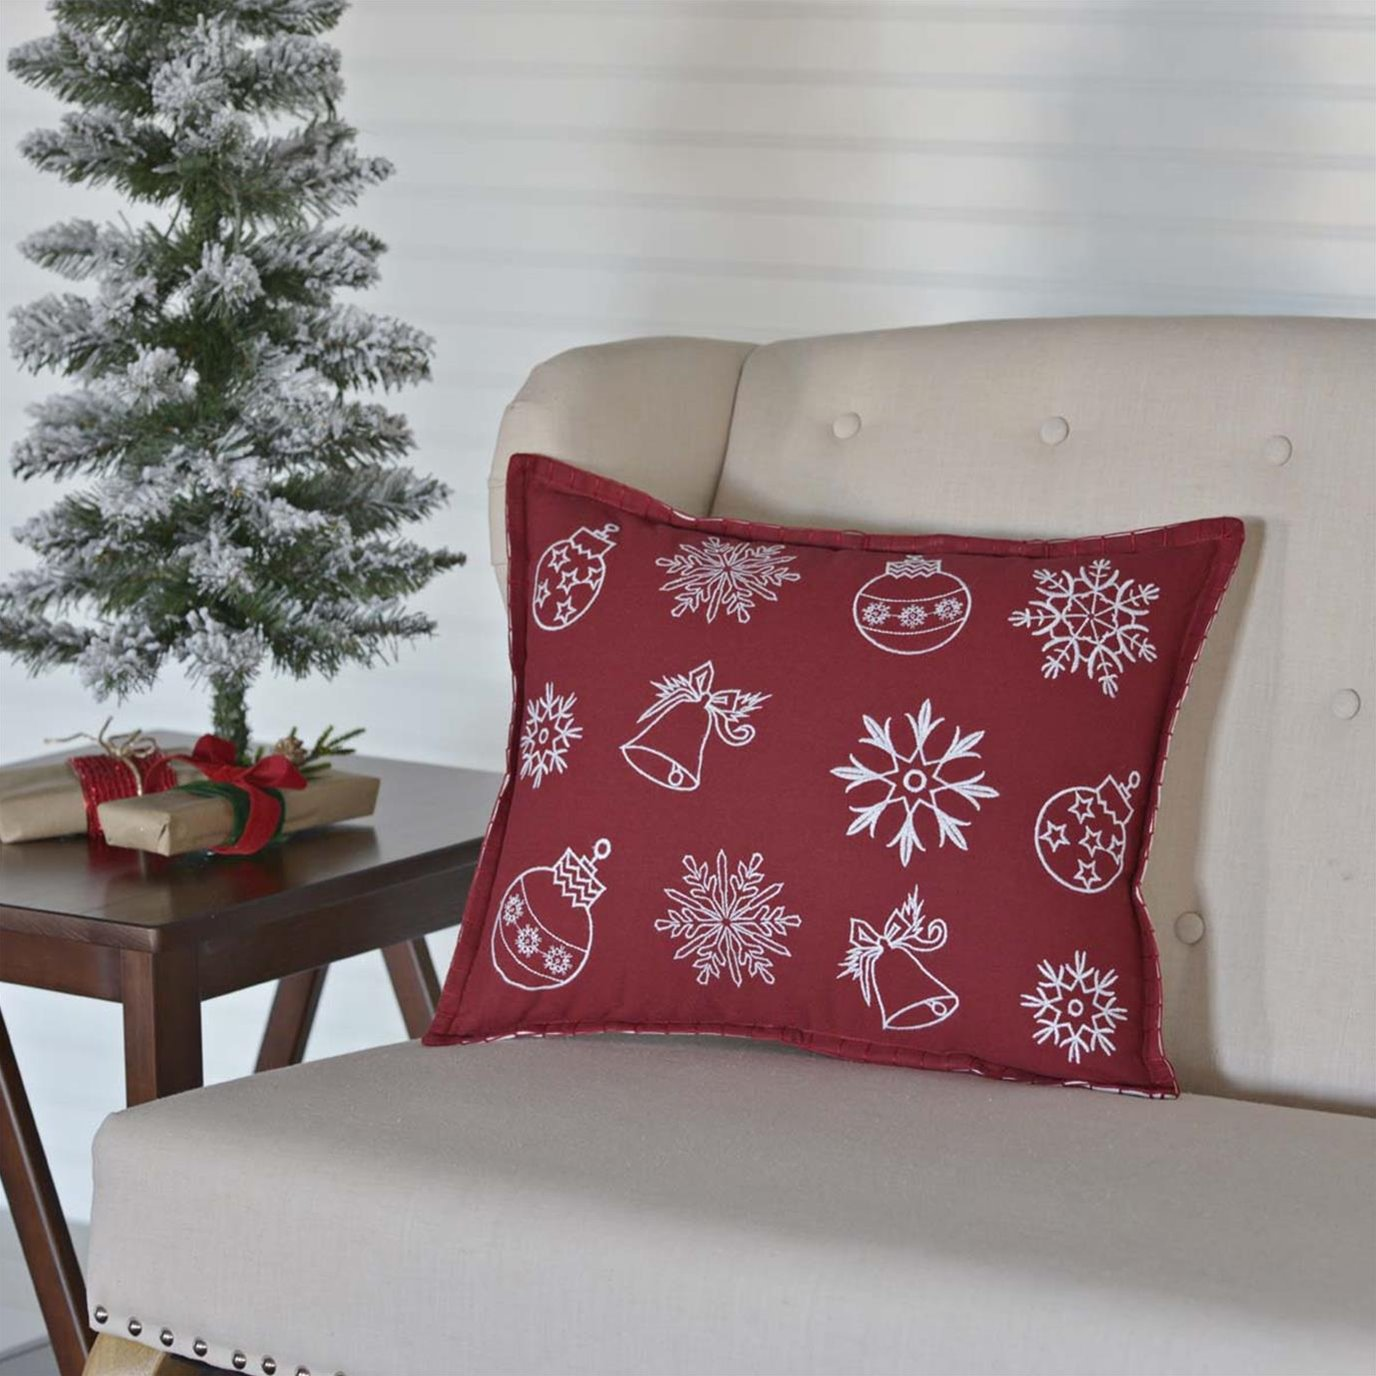 Snow Ornaments Pillow 14x18